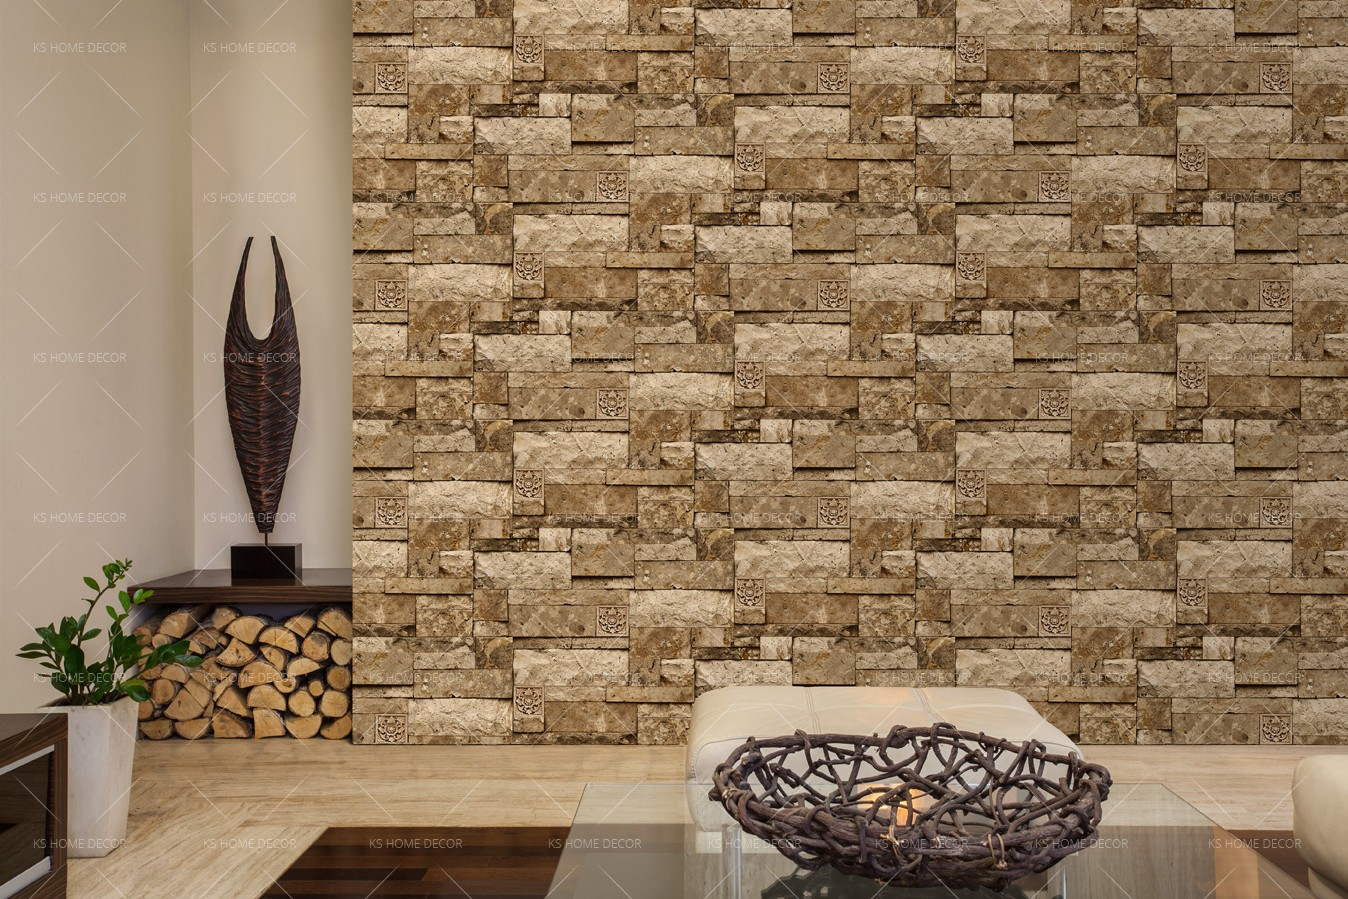 Vintage wall bricks vinyl jual vivace rhapsody korea wallpaper 7008 vintage wall bricks vinyl jual vivace rhapsody korea wallpaper 7008 3 gumiabroncs Choice Image